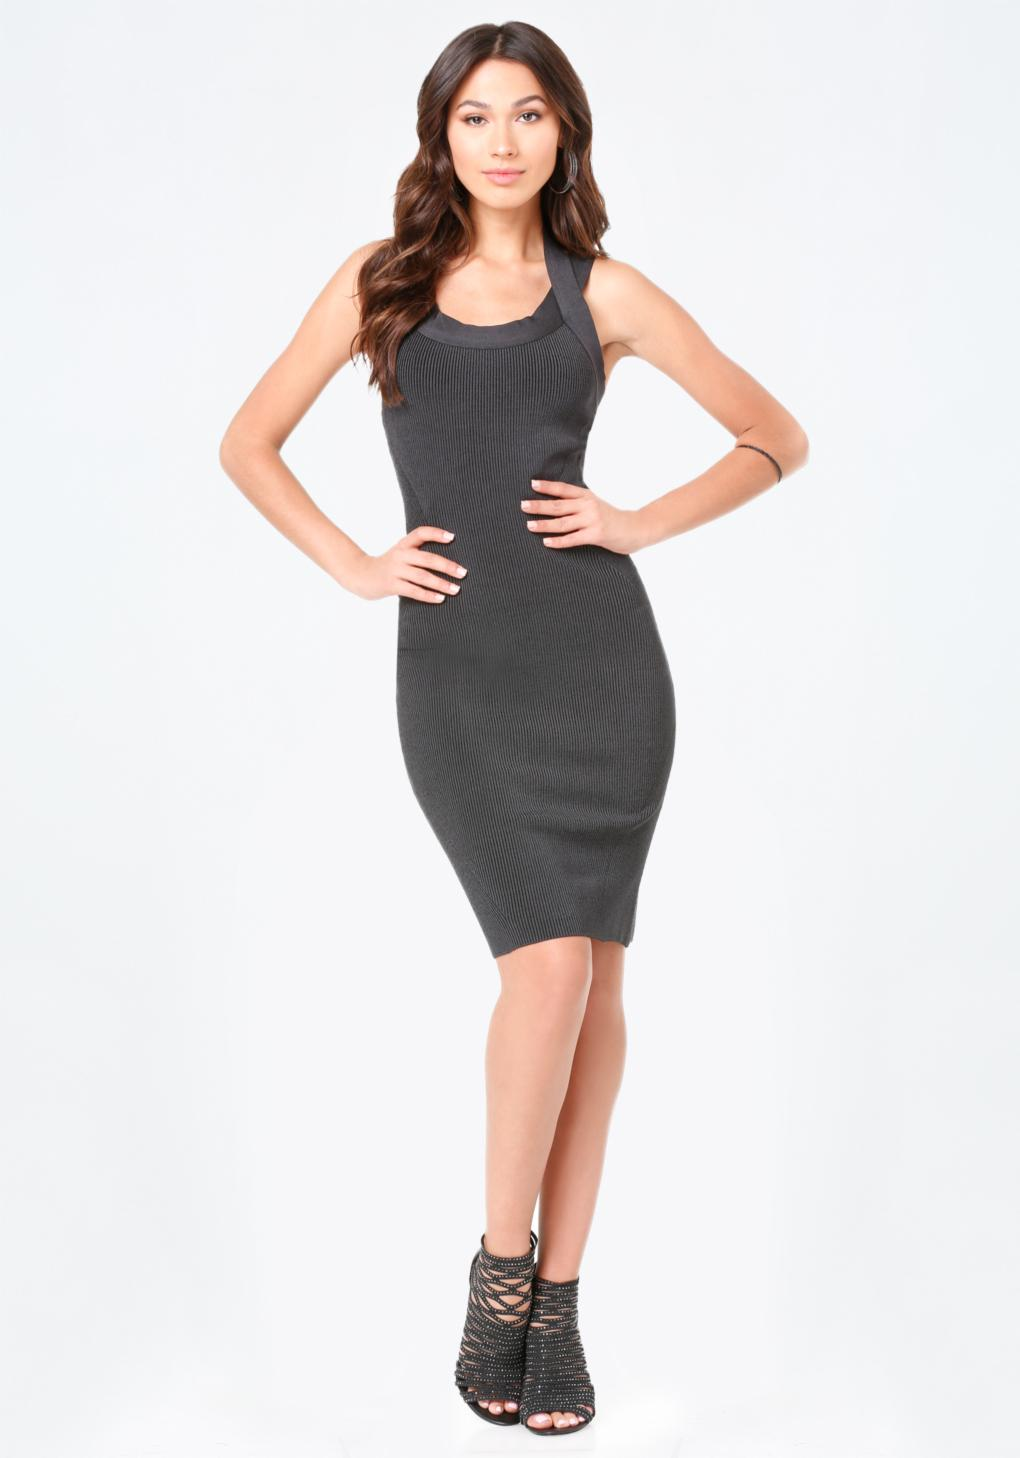 Bebe strappy ribbed dress lyst for Bebe dresses wedding guest